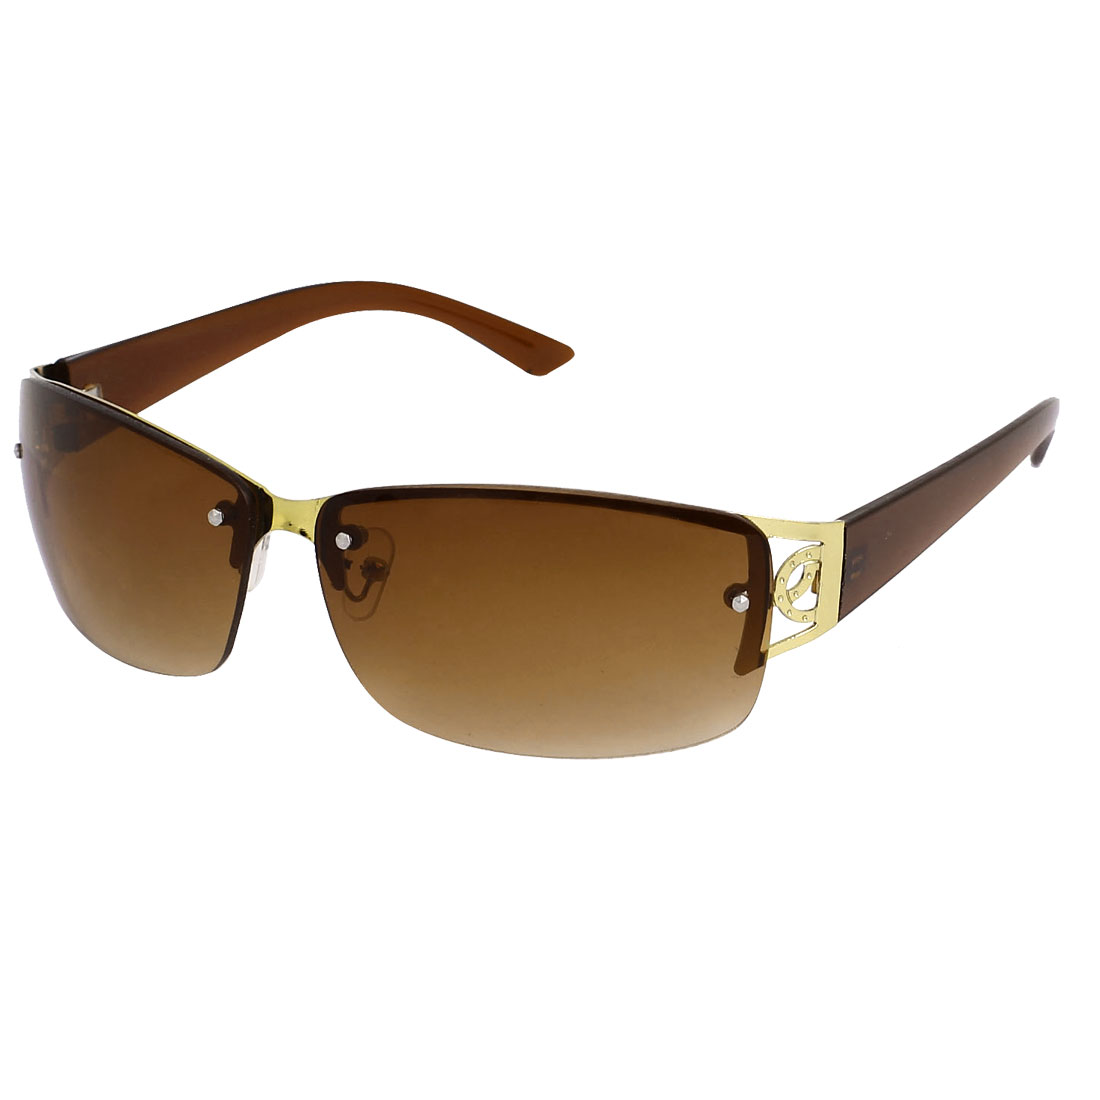 Men Rectangle Frame Half Rimless Single Bridge Sunglasses Glasses Eyewear Eyes Protecter Brown